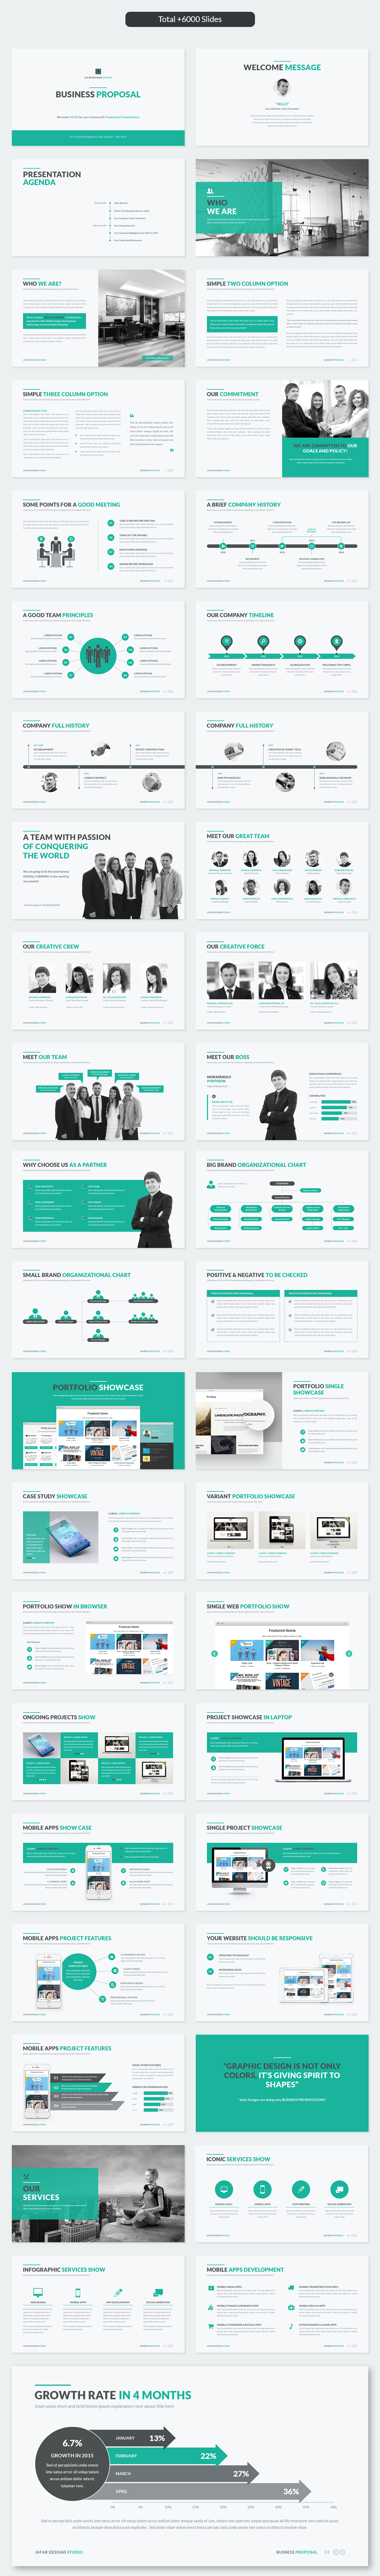 Business proposal powerpoint template on behance business proposal powerpoint template is a clean simple and unique business presentation it contains a lot of handmade diagrams graphs infographics and cheaphphosting Image collections